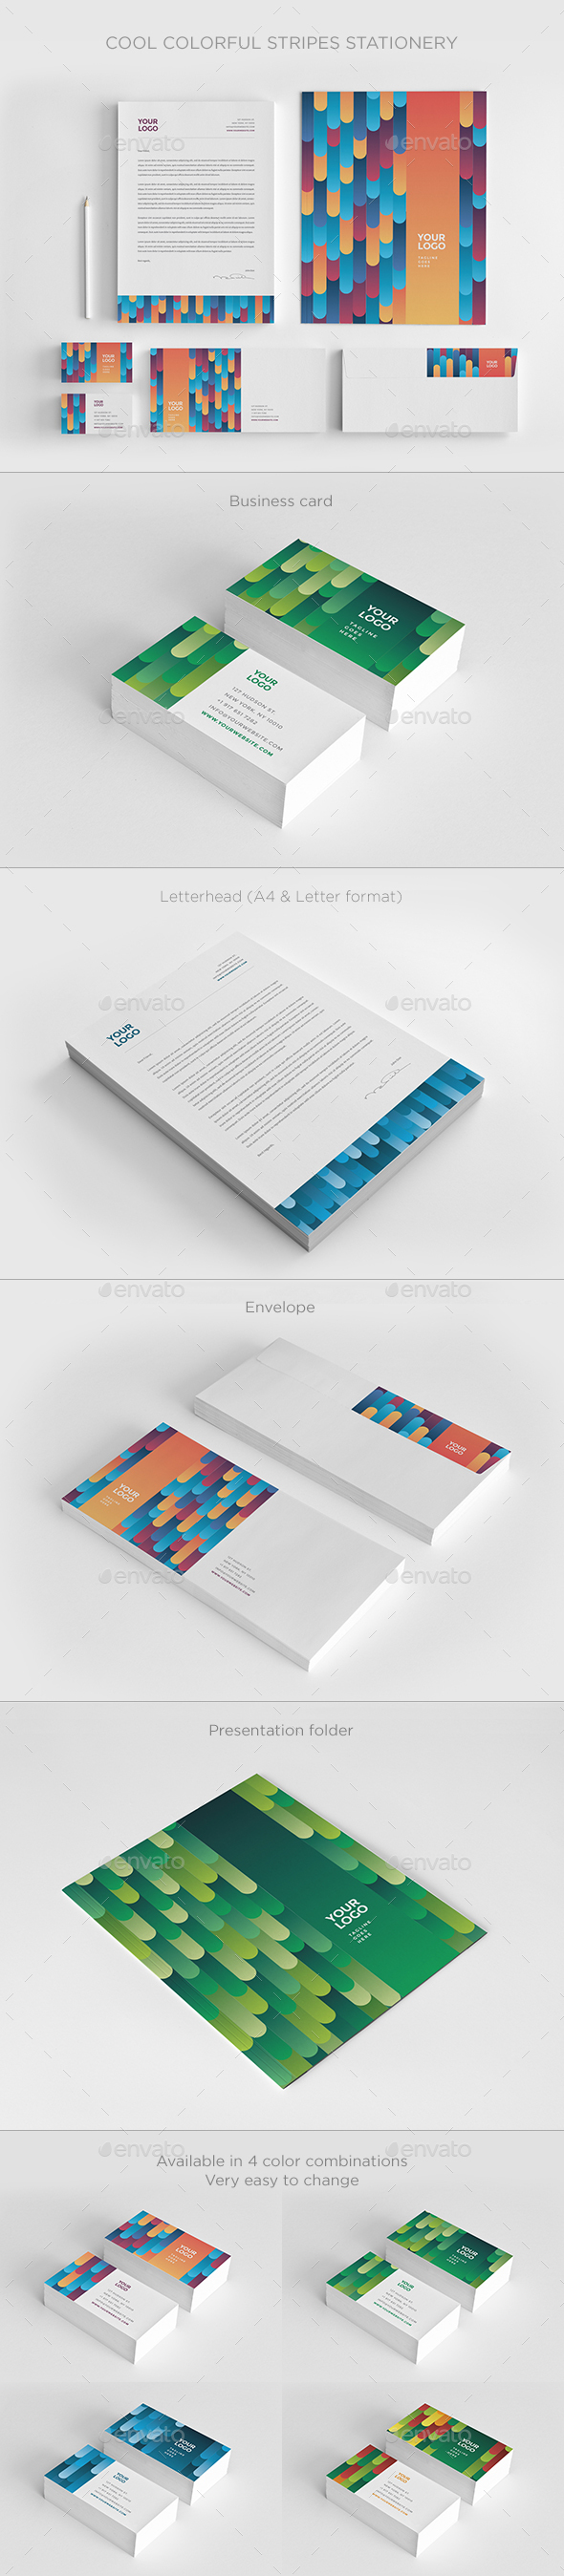 Cool Colorful Stripes Stationery - Stationery Print Templates